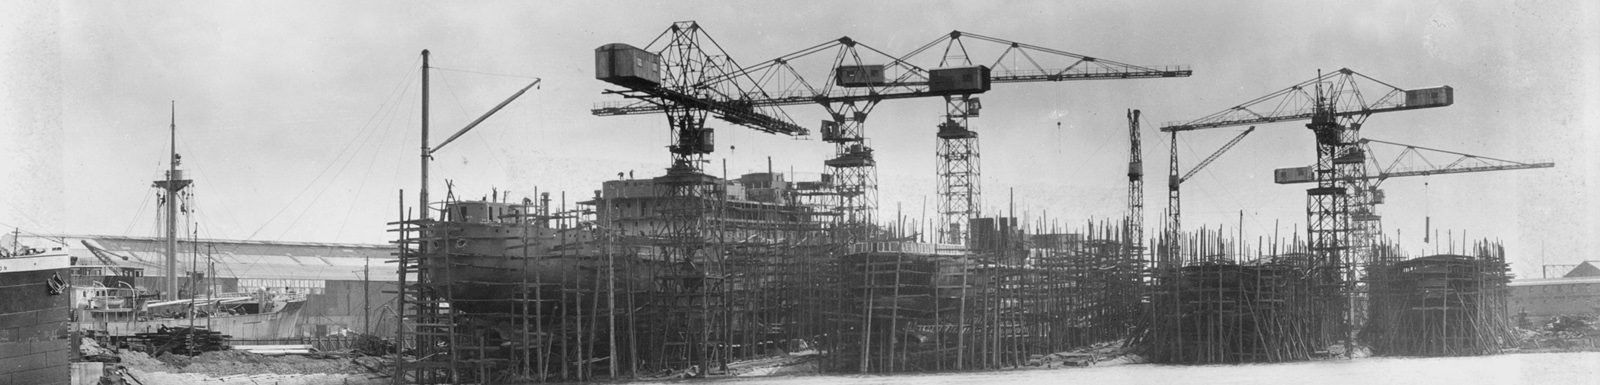 Shipbuilding on the Clyde, image courtesy Culture & Sport Glasgow/Mitchell Library